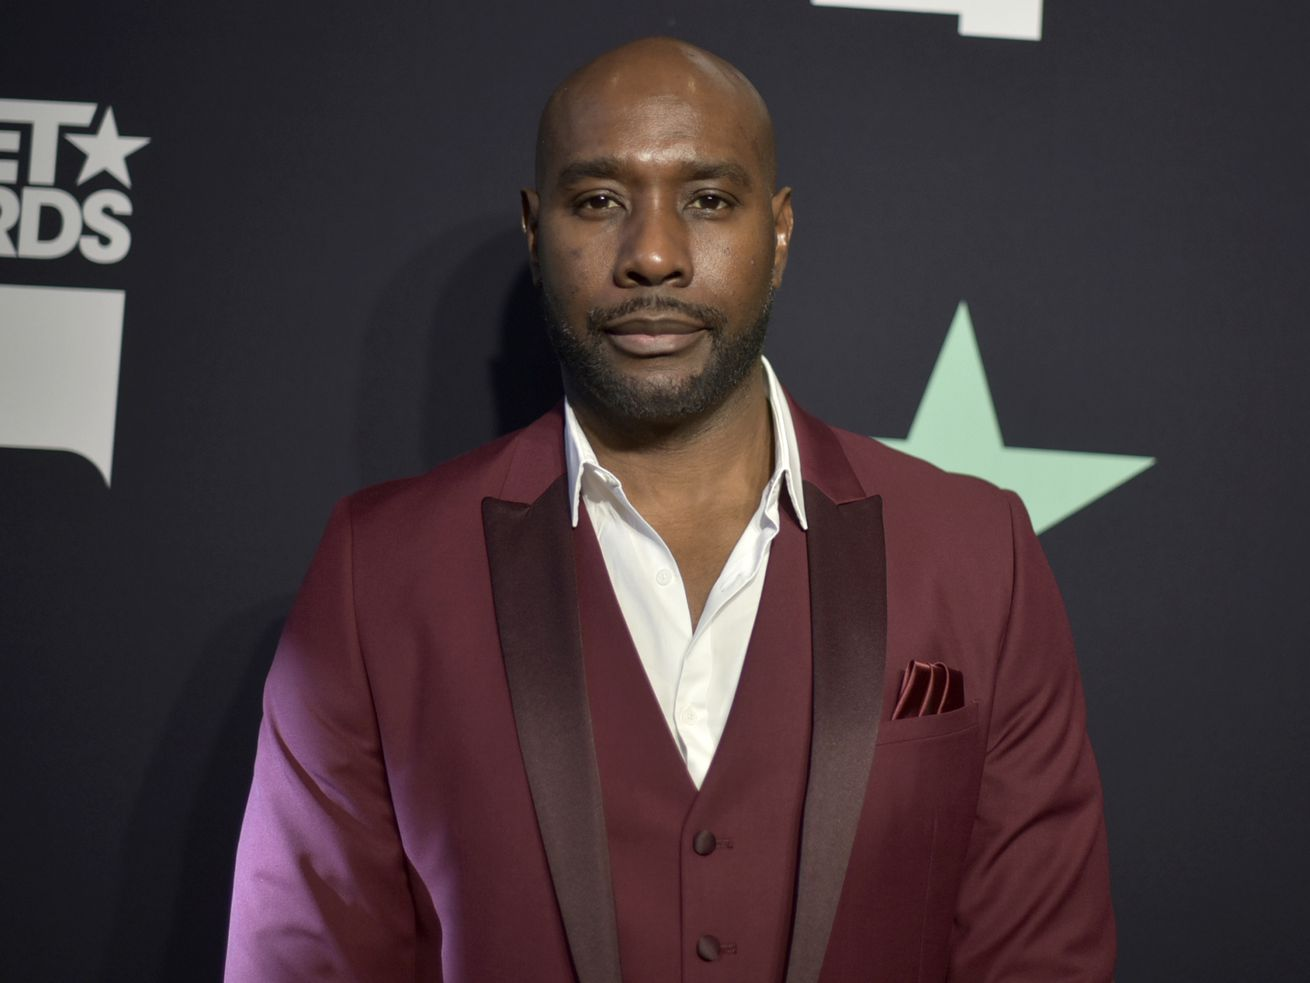 """Morris Chestnut poses in the press room at the BET Awards in 2019 in Los Angeles. Affluent Black families are the focus of """"Our Kind of People,"""" a new Fox drama series from """"Empire"""" creator Lee Daniels and starring Chestnut that will join the network's fall schedule."""